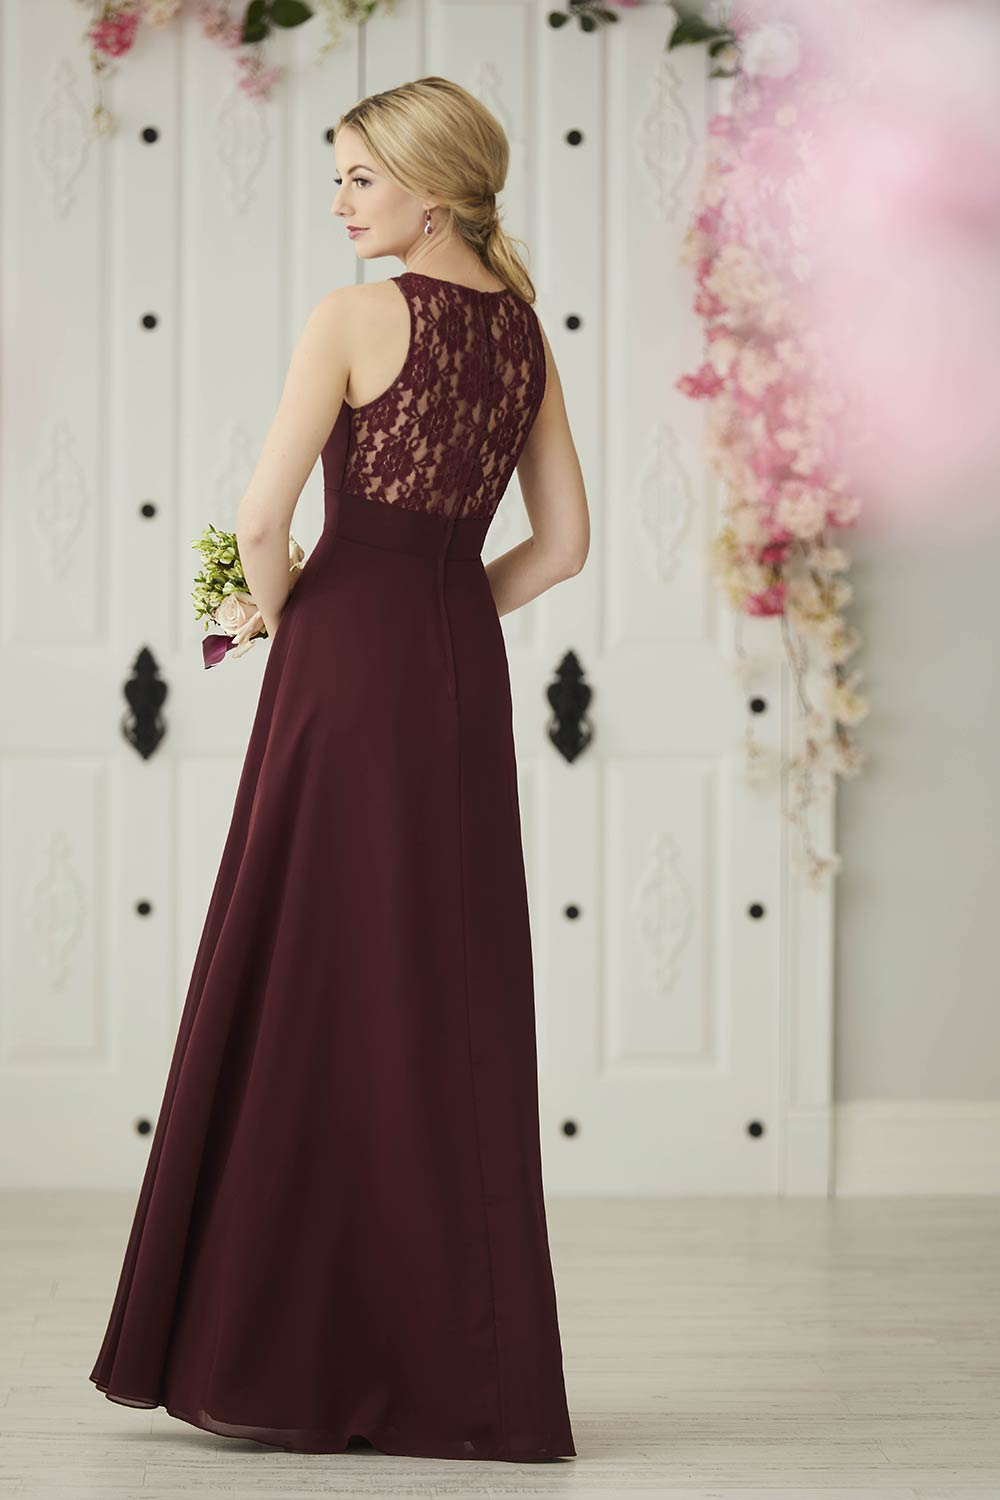 bridesmaid-dresses-jacquelin-bridals-canada-27304